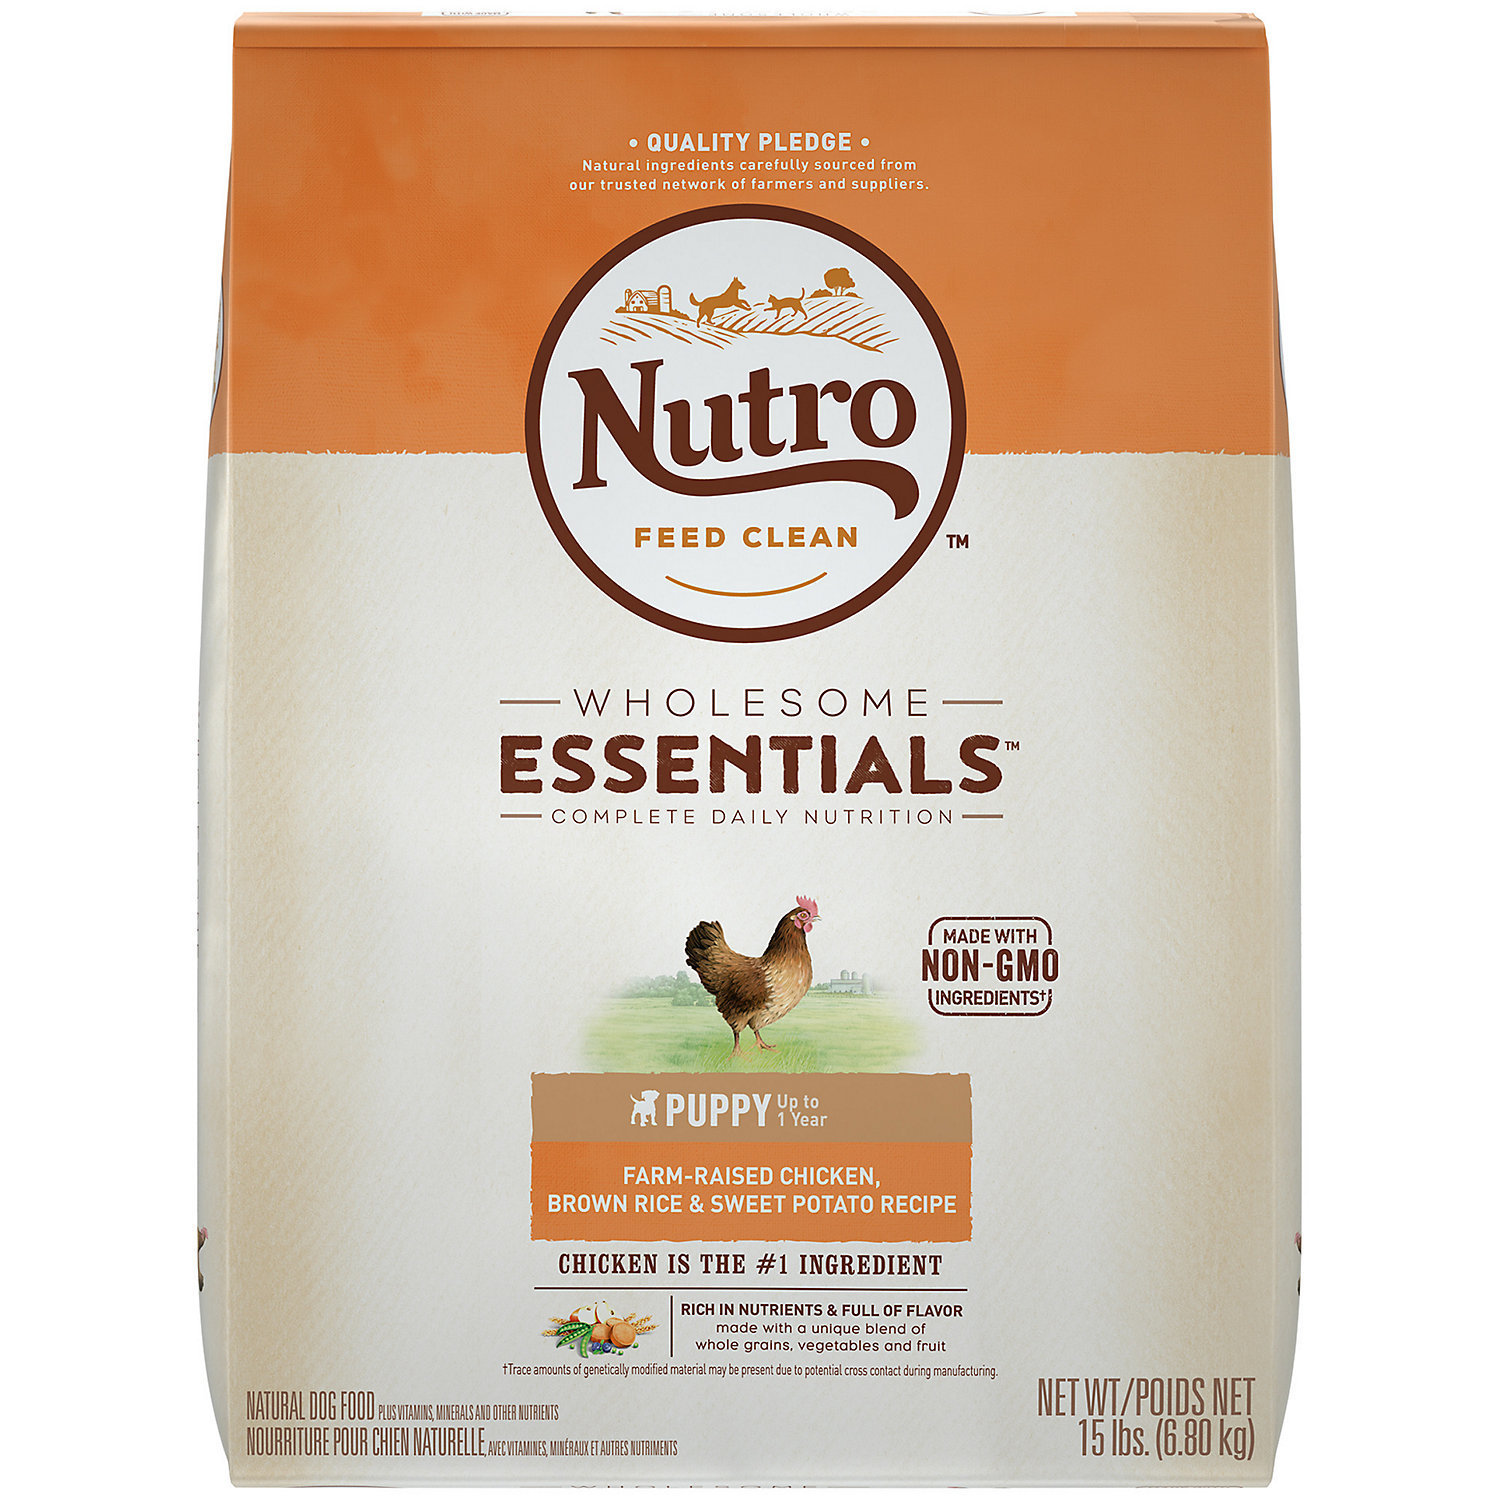 Nutro Natural Choice Chicken, Whole Brown Rice and Oatmeal Puppy Food, 5 lbs. (1/19) (A.M1)